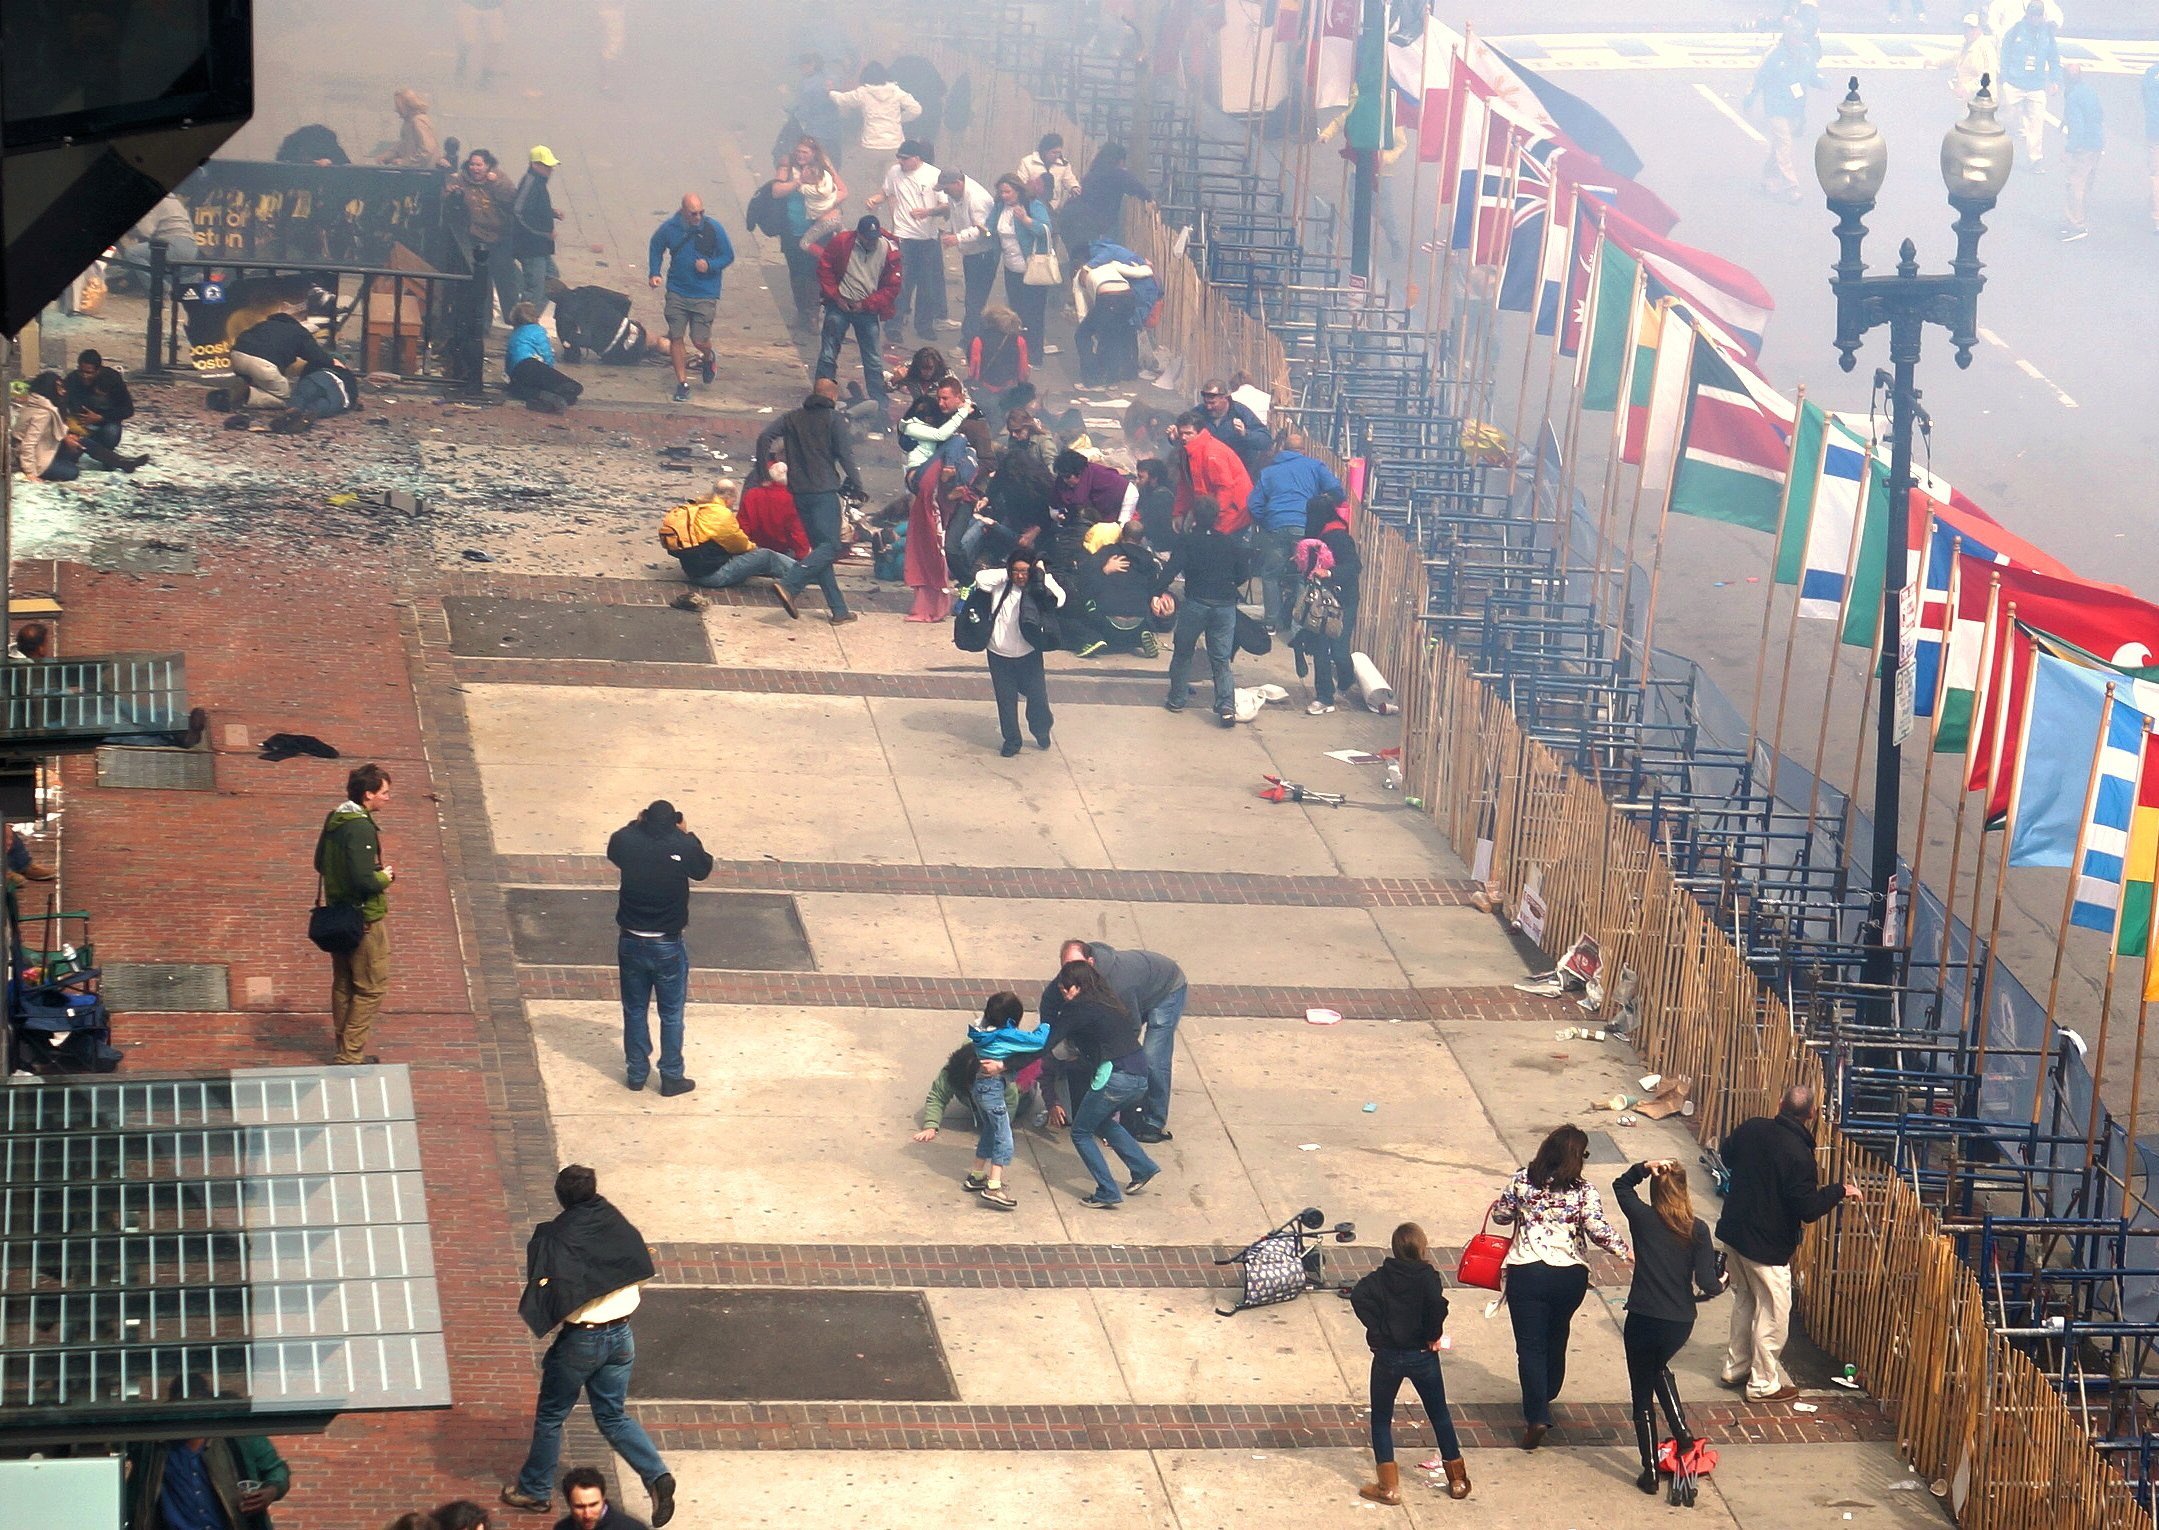 Pictures of the boston explosion Boston Bombings - News, Pictures & Videos - CBS News